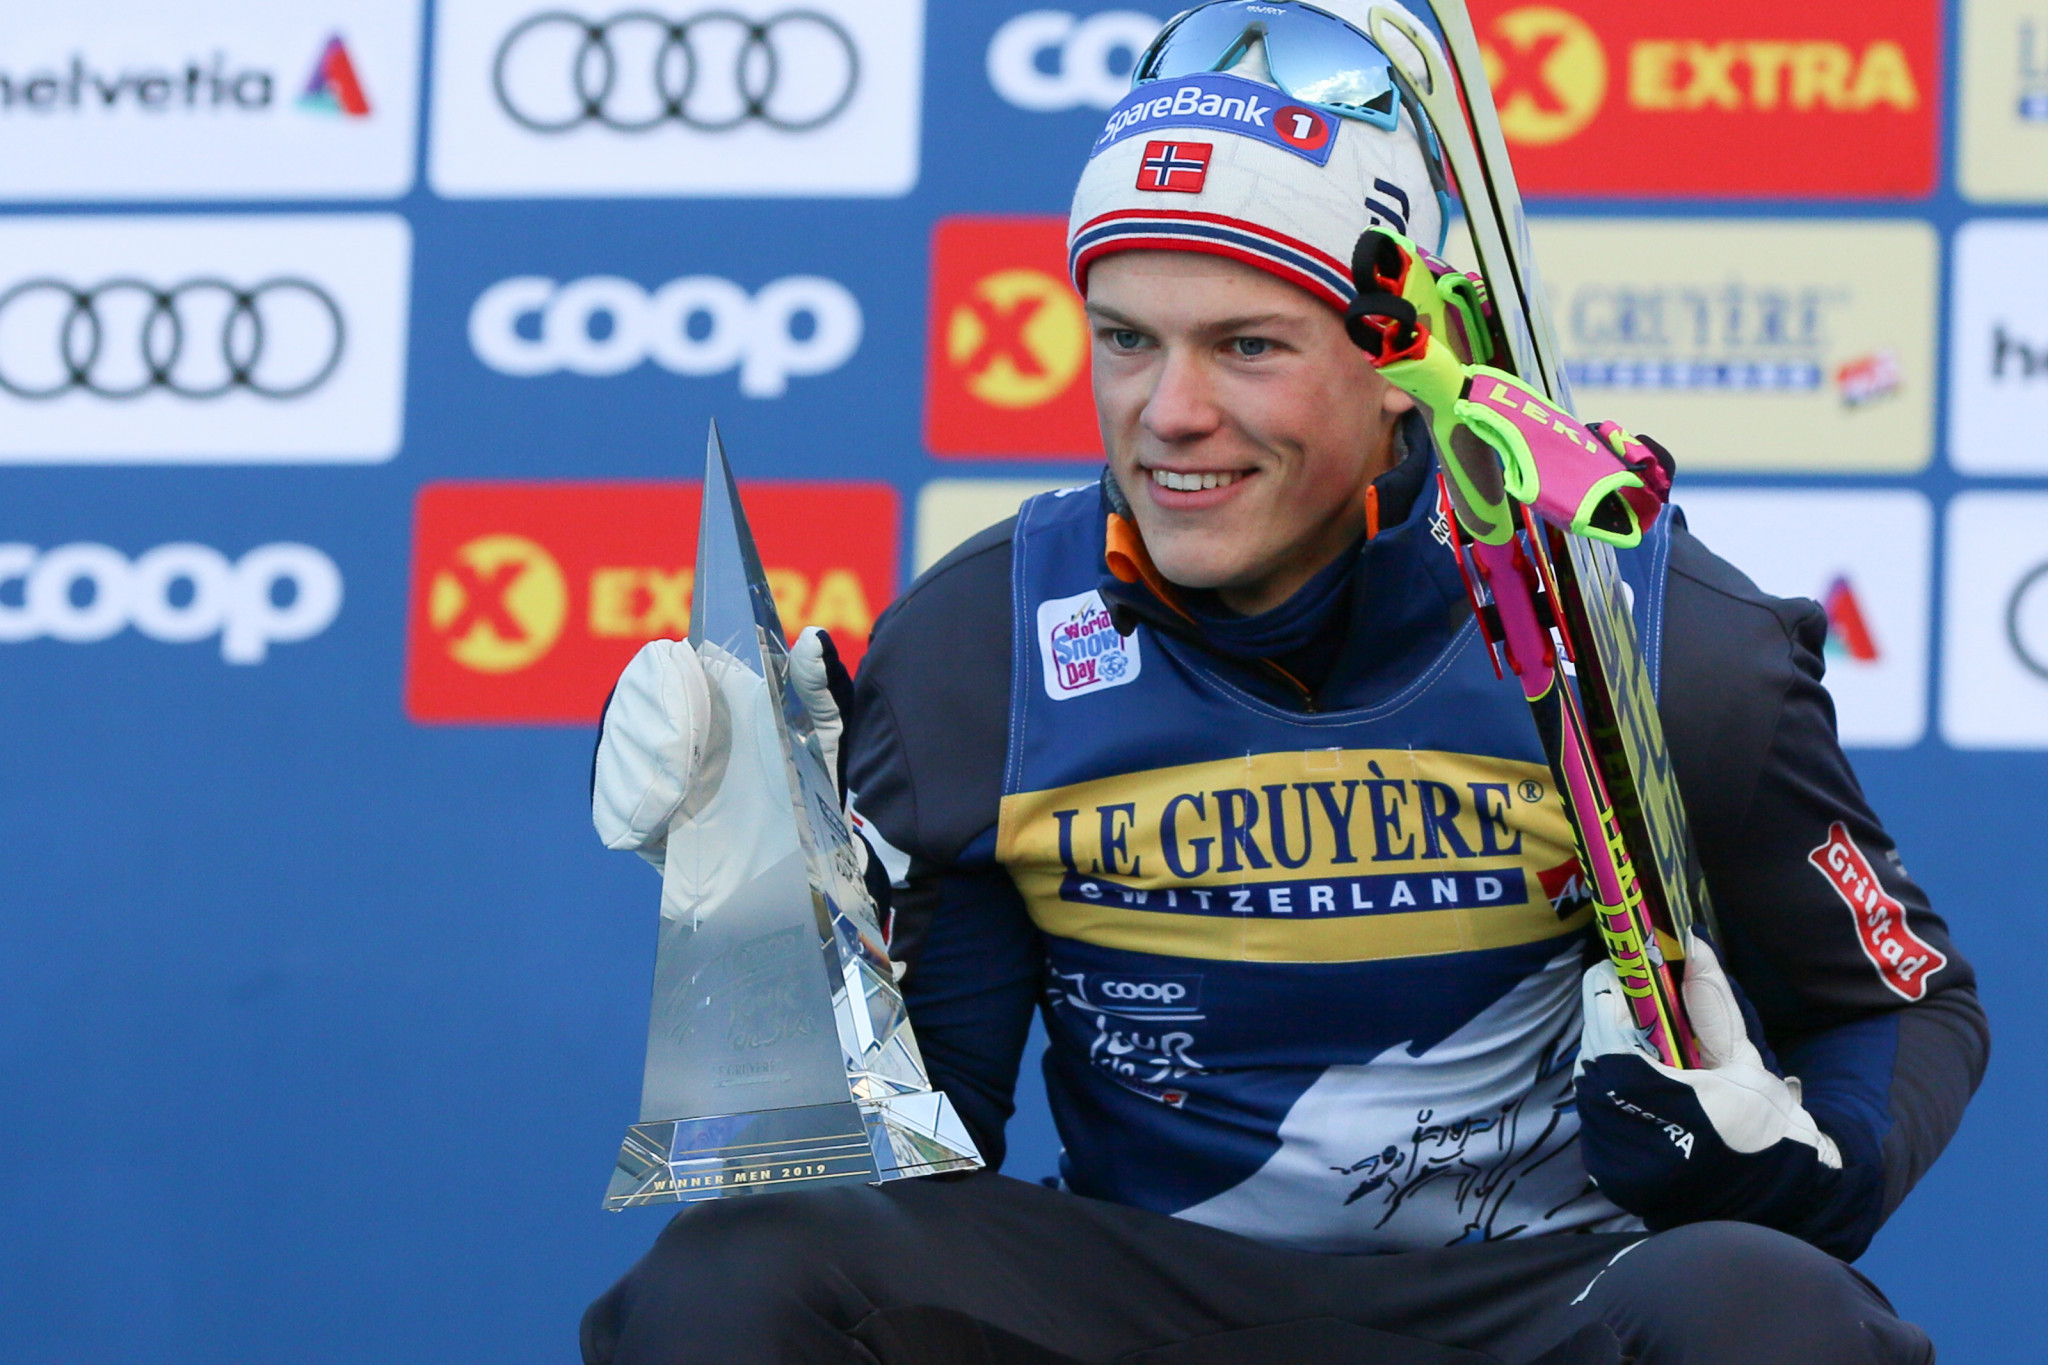 Klæbo and Østberg seeking further wins as FIS Cross-Country World Cup arrives in Cogne